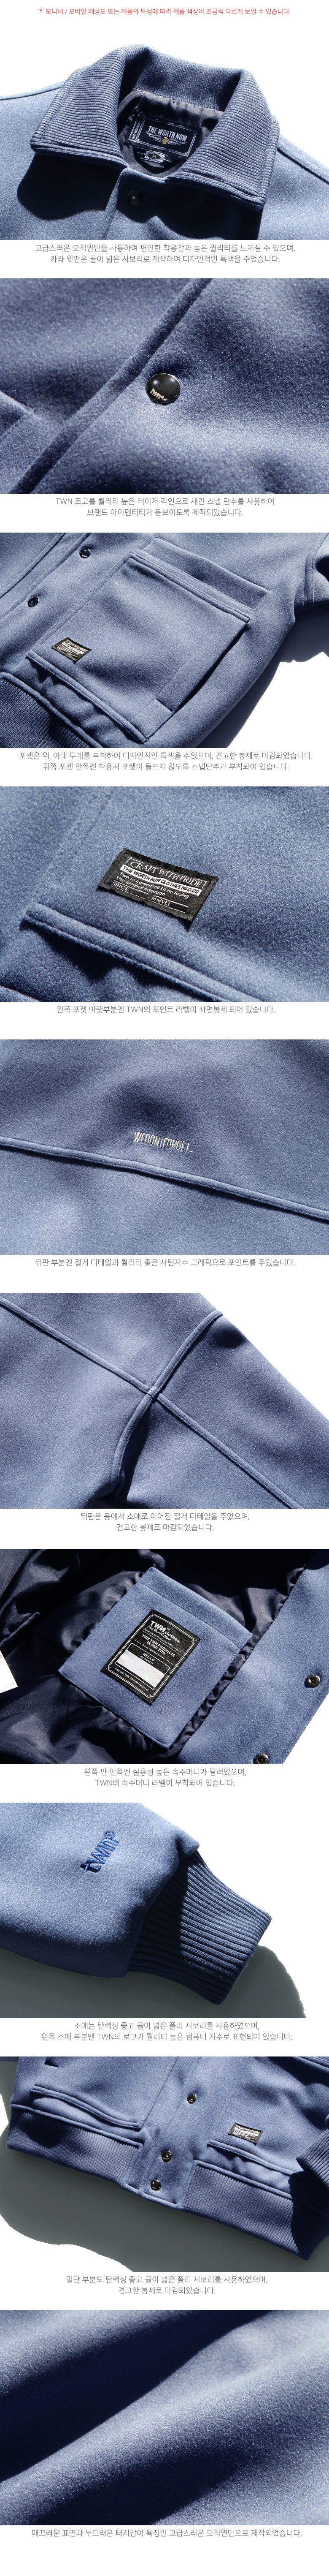 20190121_twn_tailor_detail_bluegray_je_02.jpg